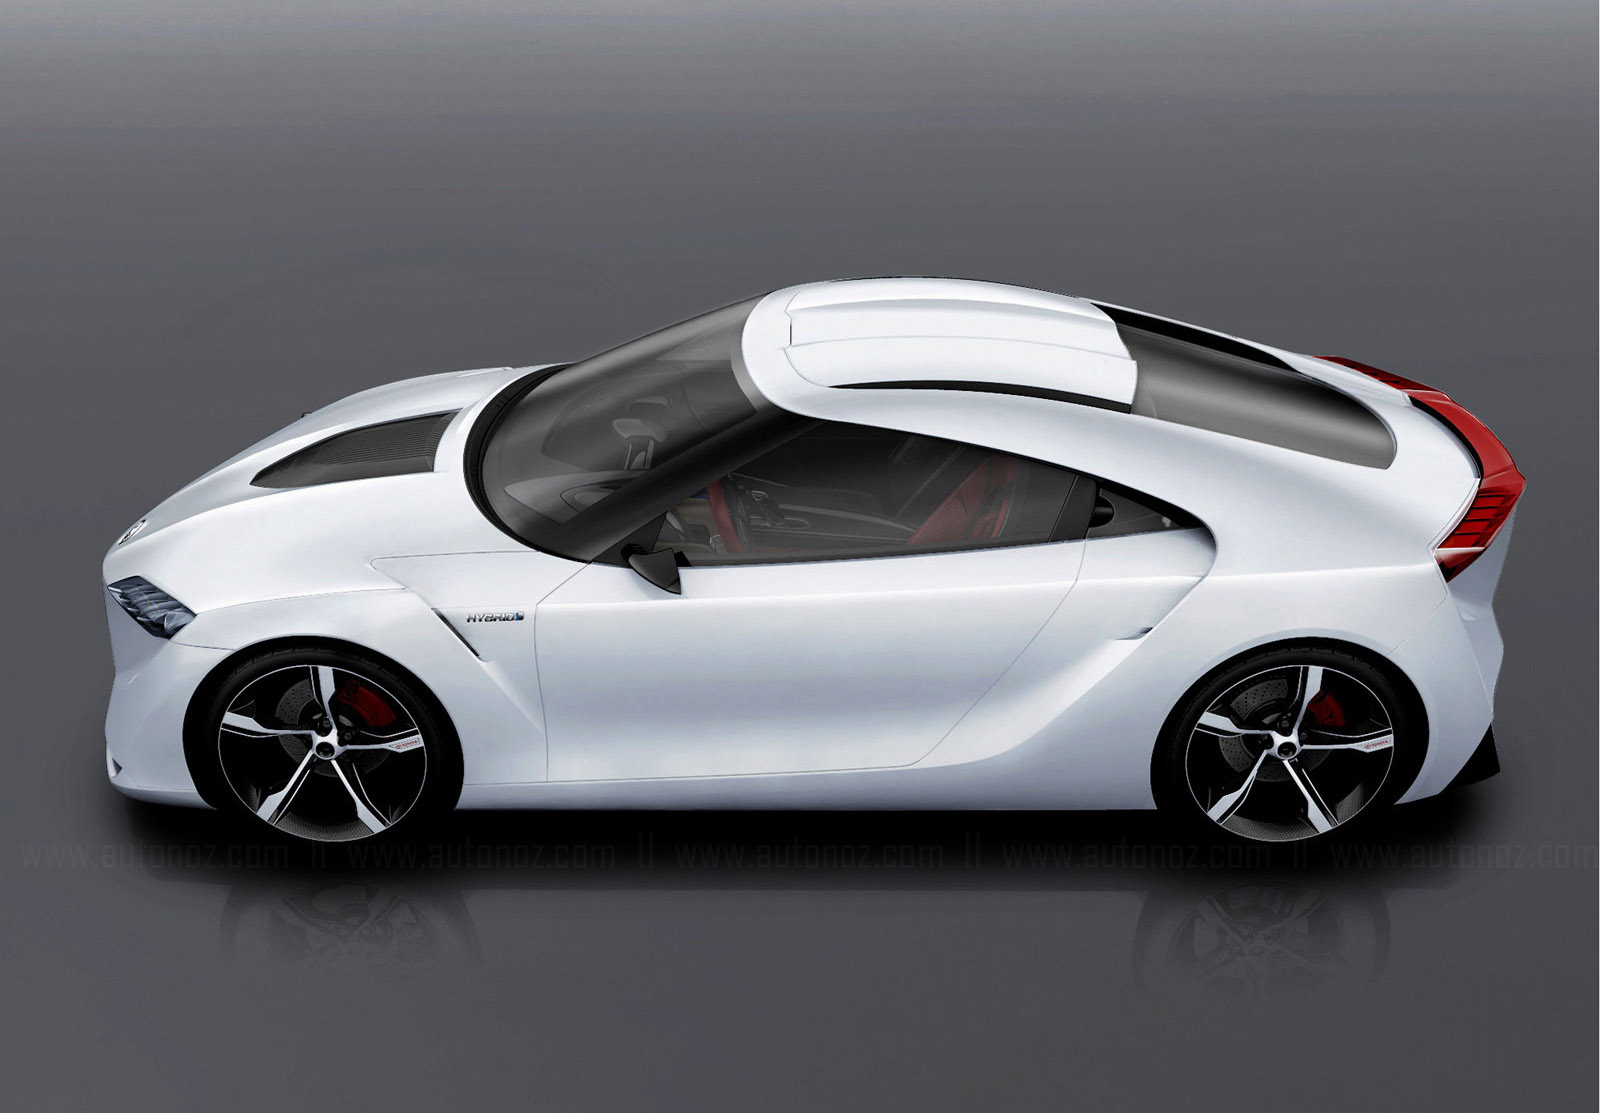 sport cars  toyota supra 2012 images  pictures  u0026 wallpapers